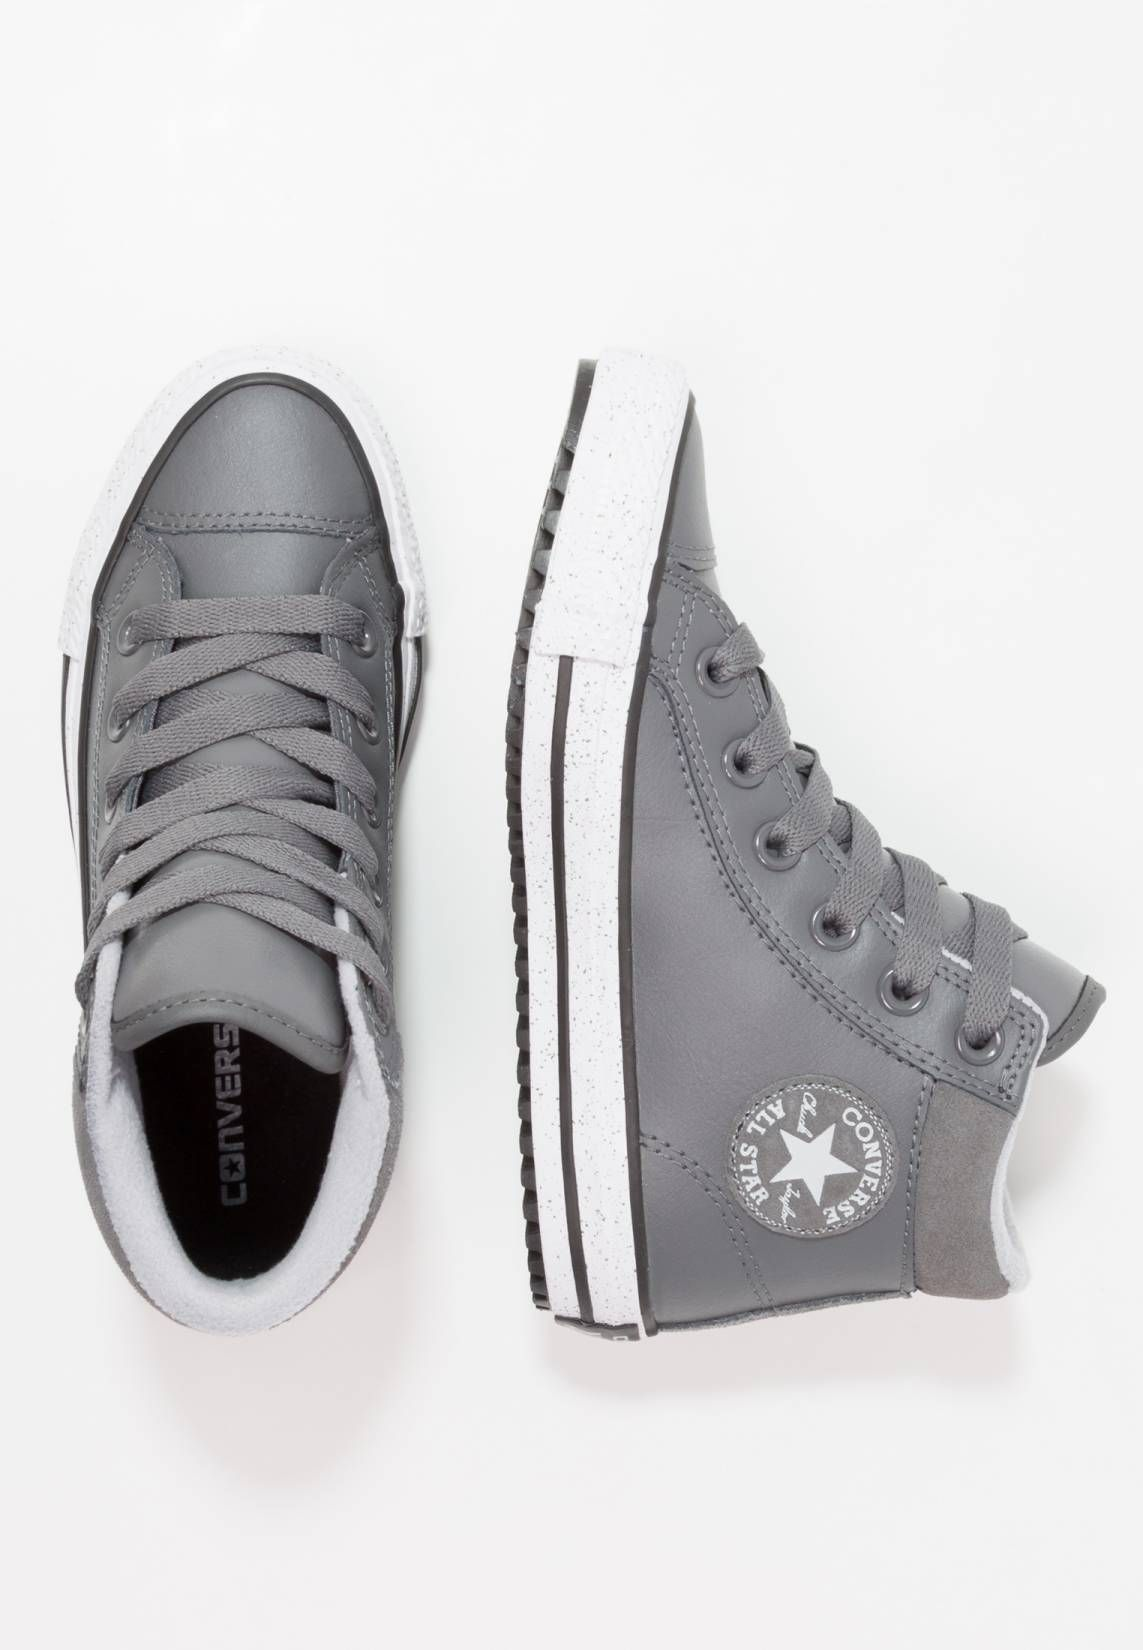 converse all star sneakers pelle